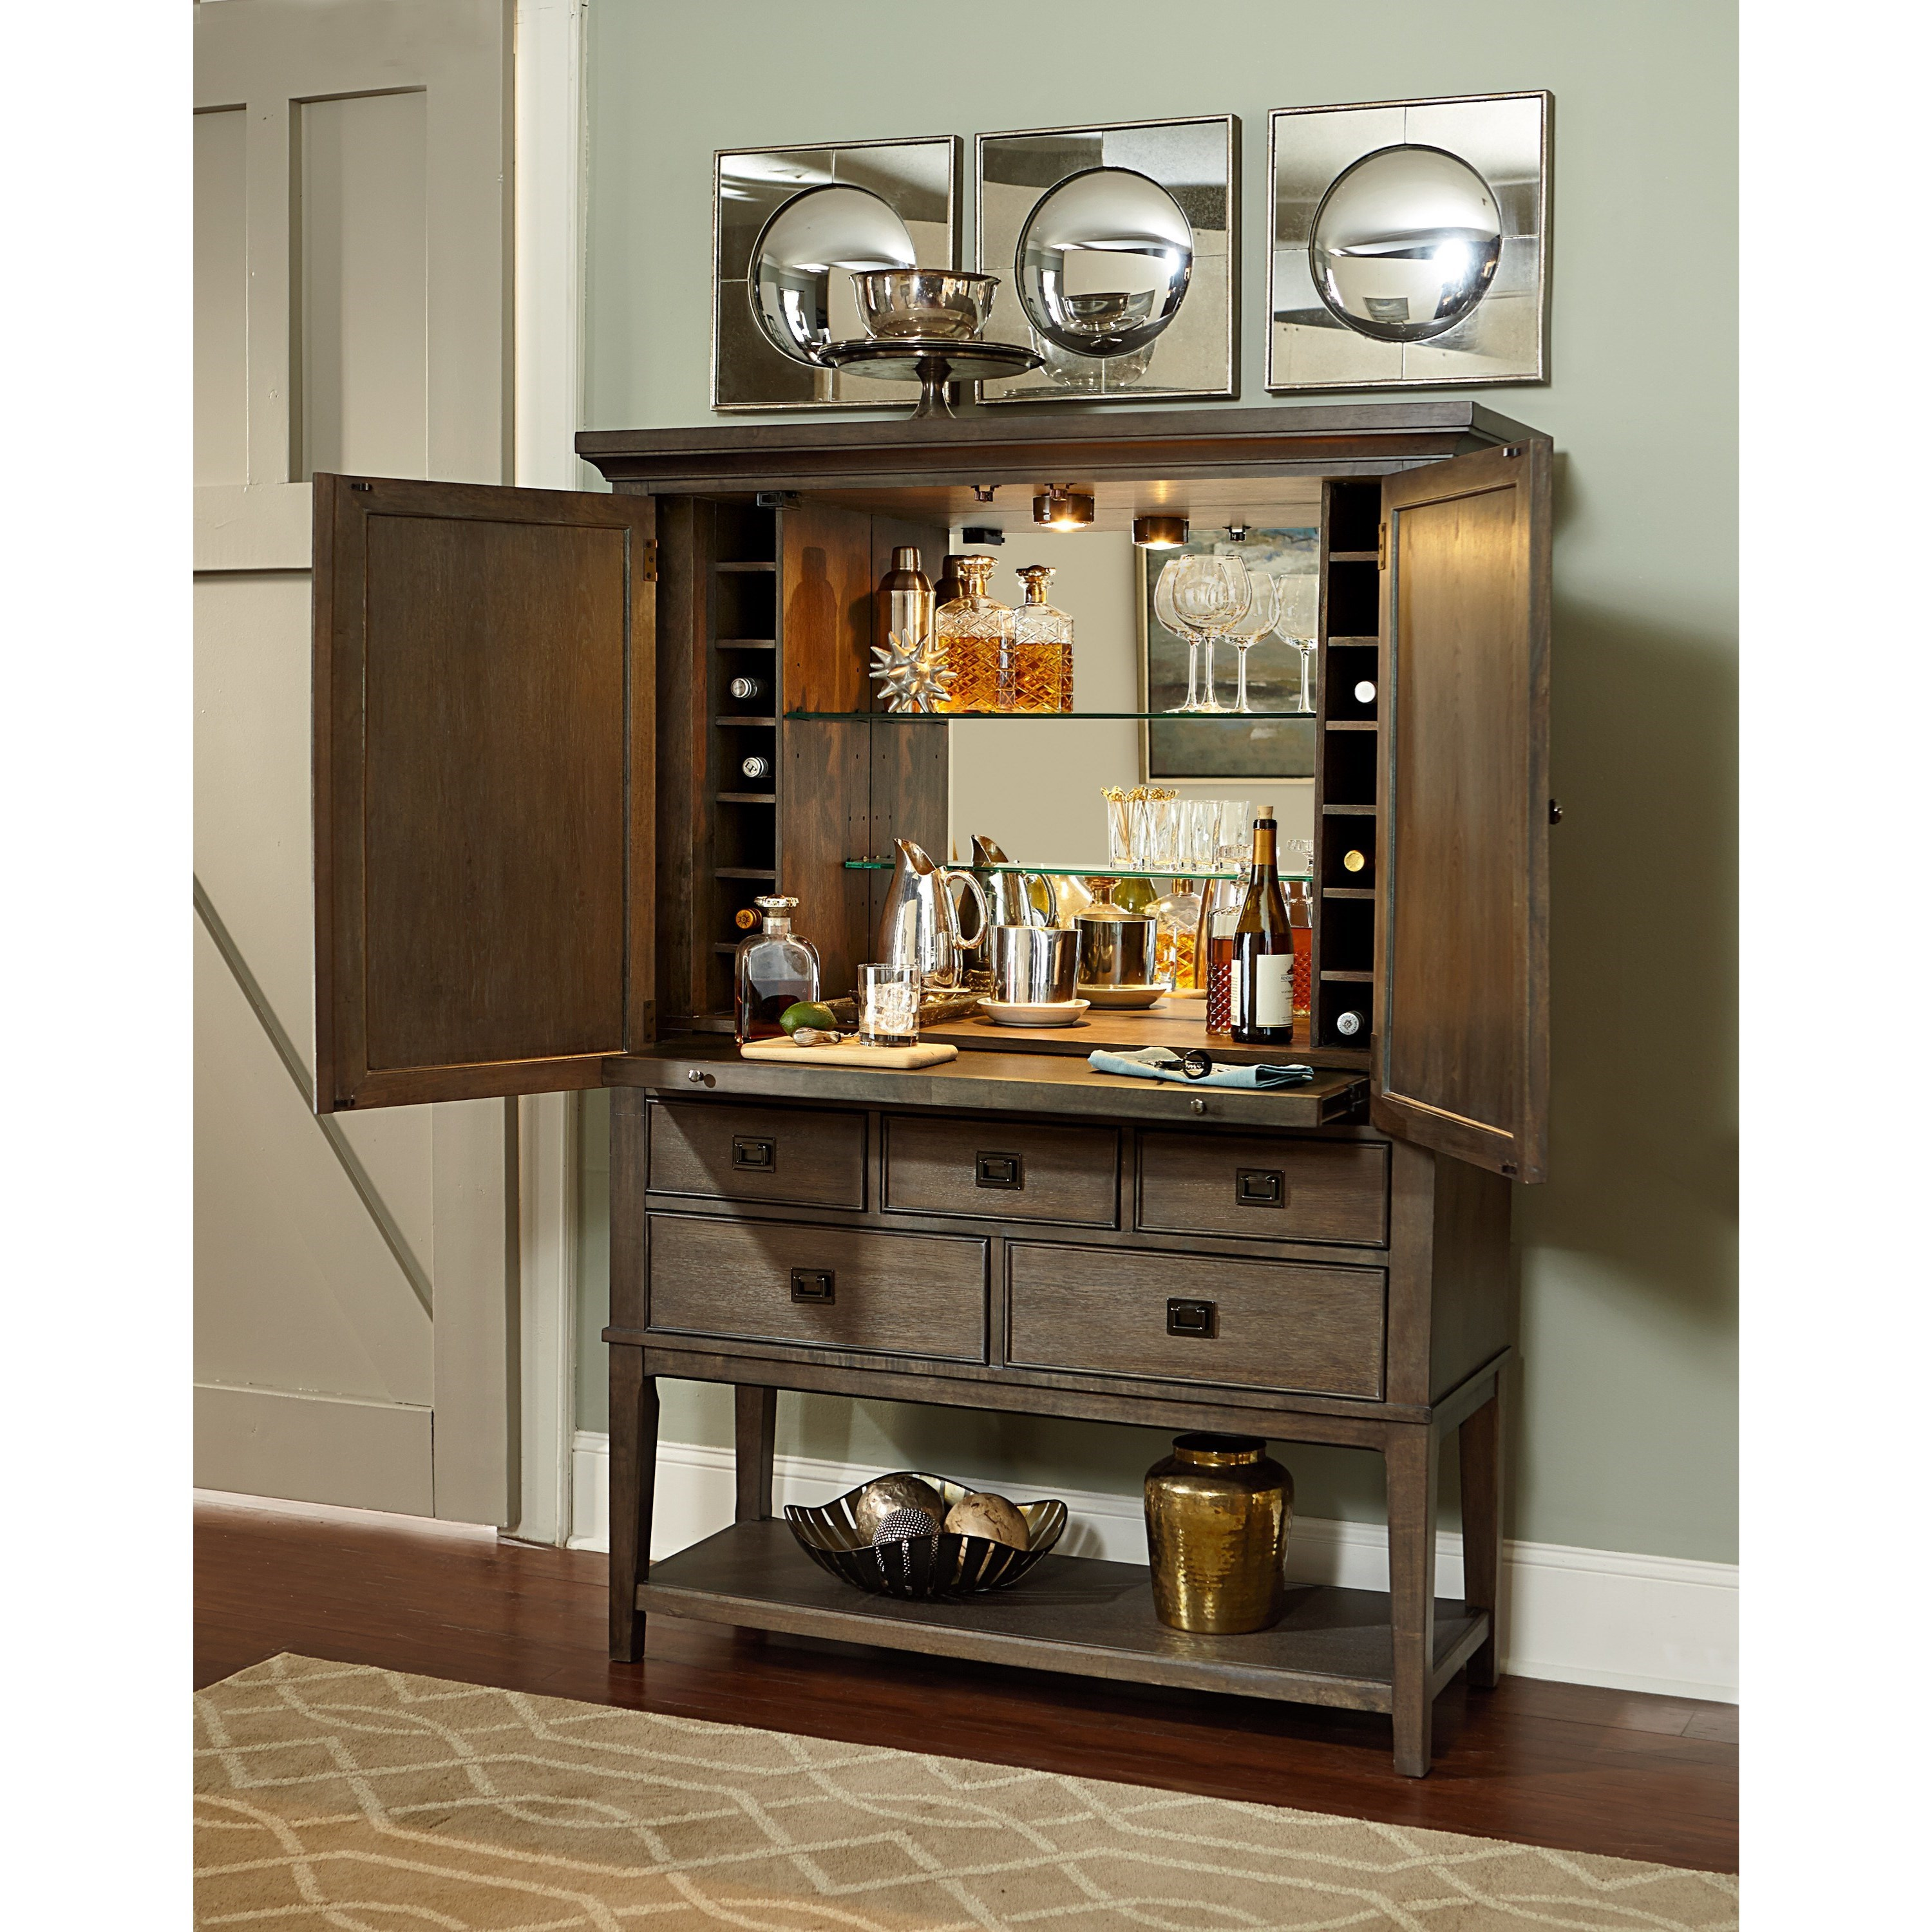 Contemporary Bar Cabinet With Bottle Storage And Pull Out Shelf By Hammary Wolf And Gardiner